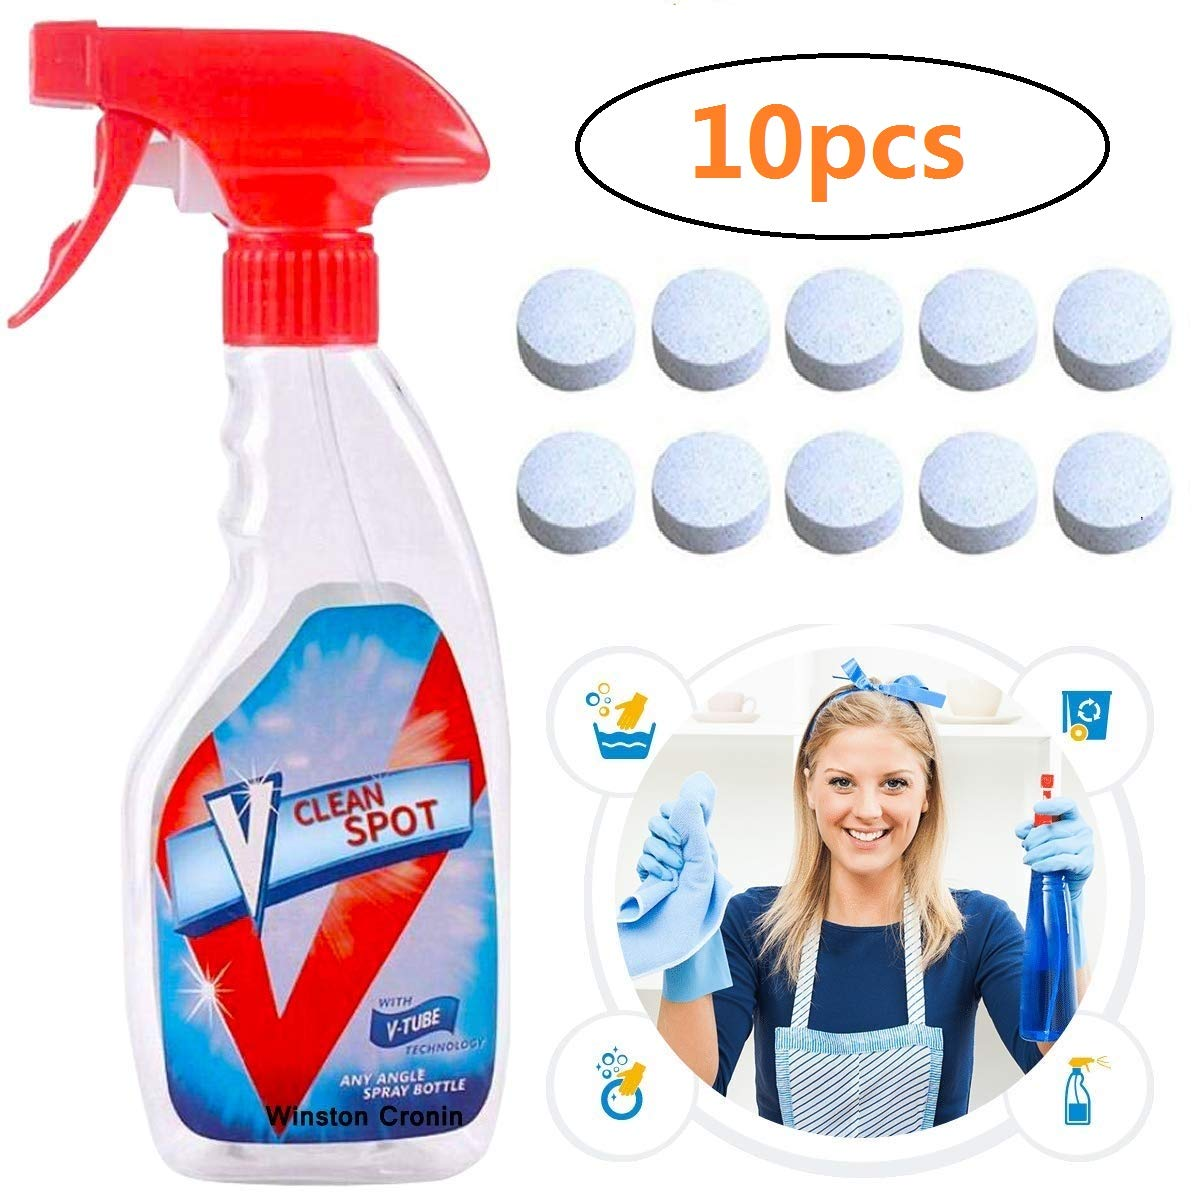 Letlar Effervescent Spray Cleaner, Home Cleaning Spray Cleaner Car Windshield Glass Washer Tablets Cleaner Concentrate Cleaning Tool All Purpose Home Cleaning Effervescent Spray Cleaner (10pic)